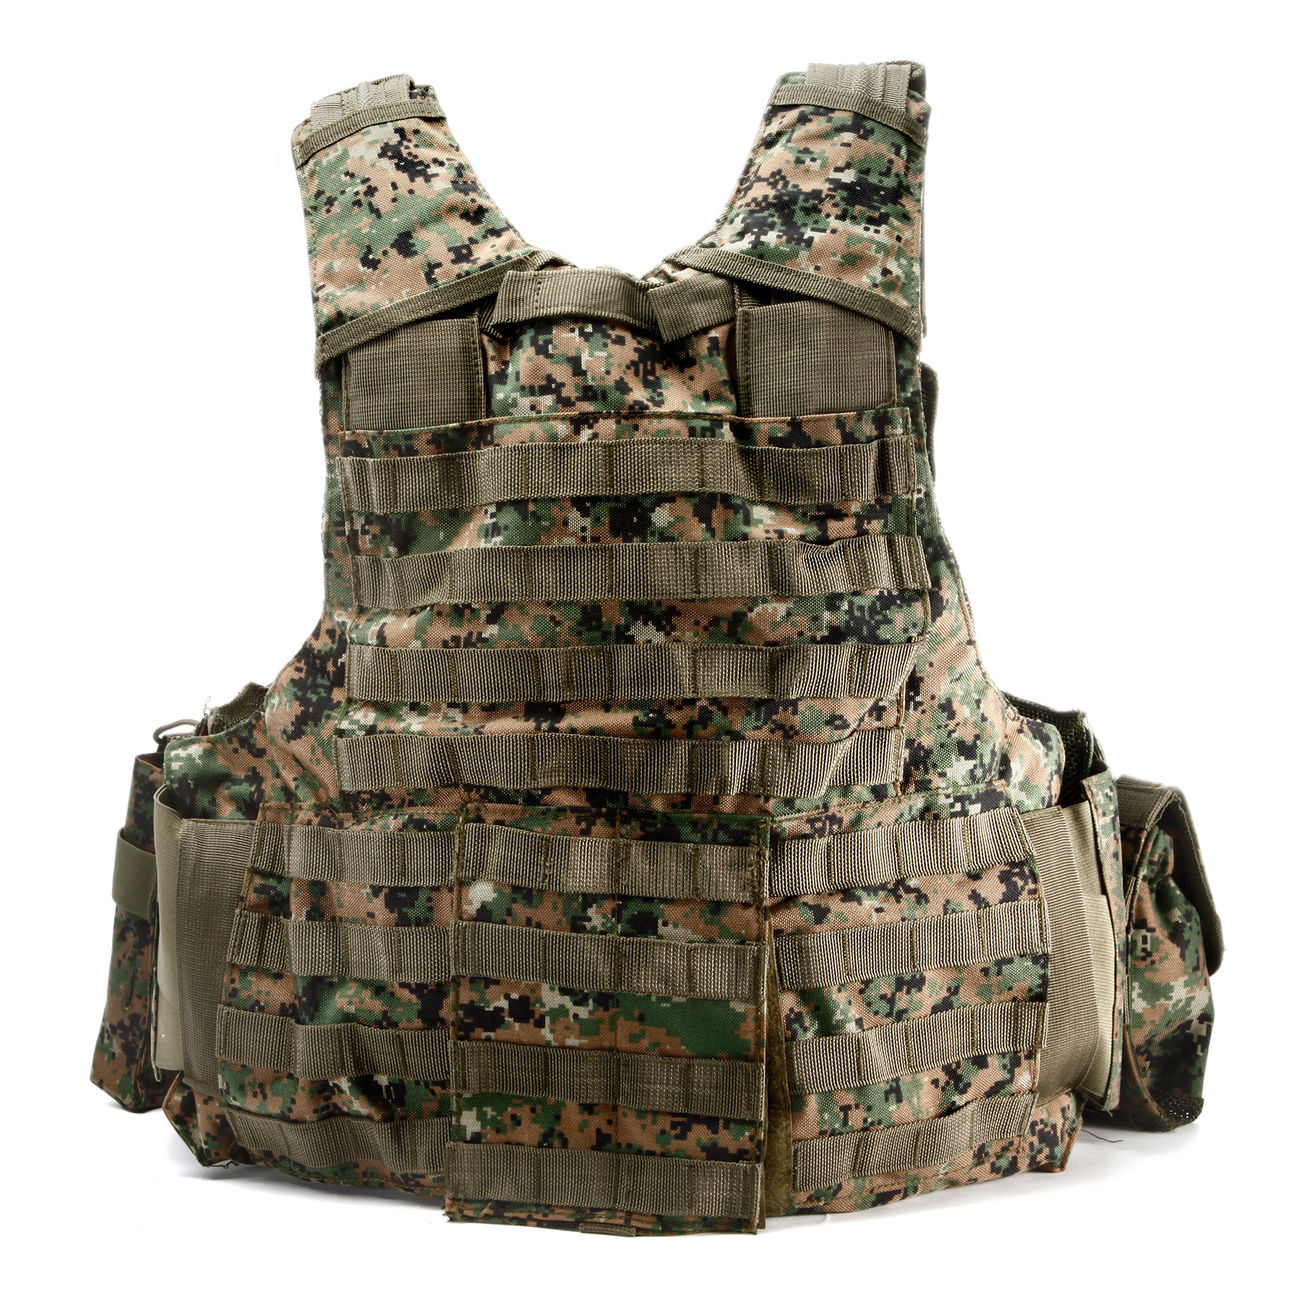 101 INC. Raptor Tactical Vest digital camo 2